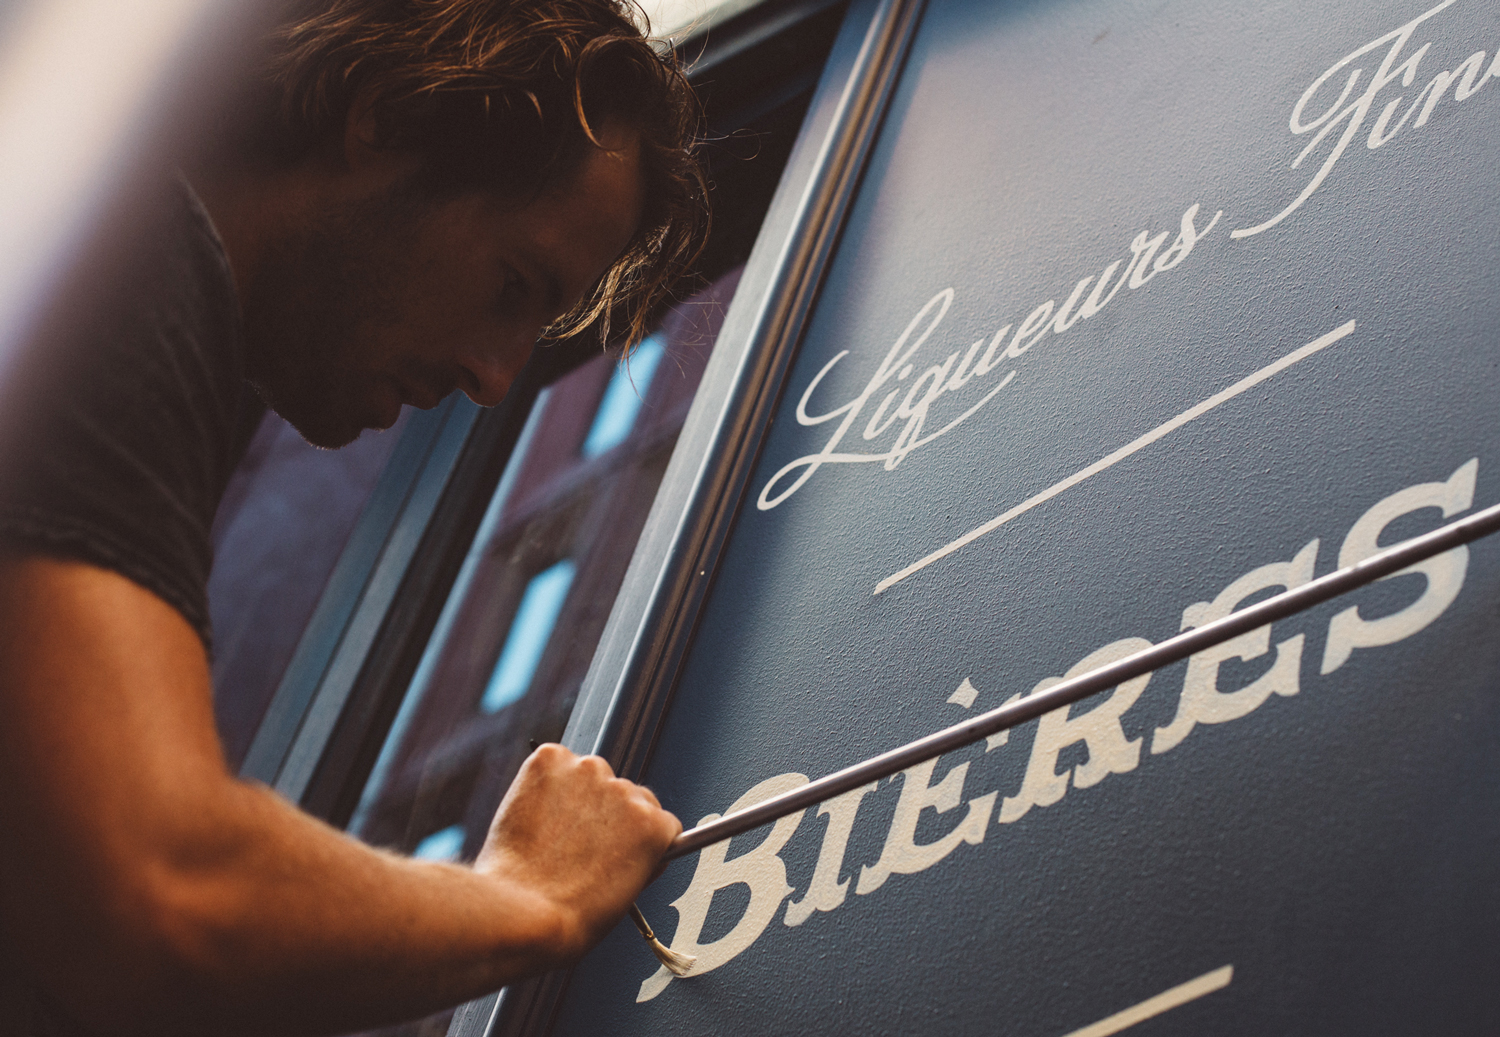 Store front design and sign-painting for La Buvette bar